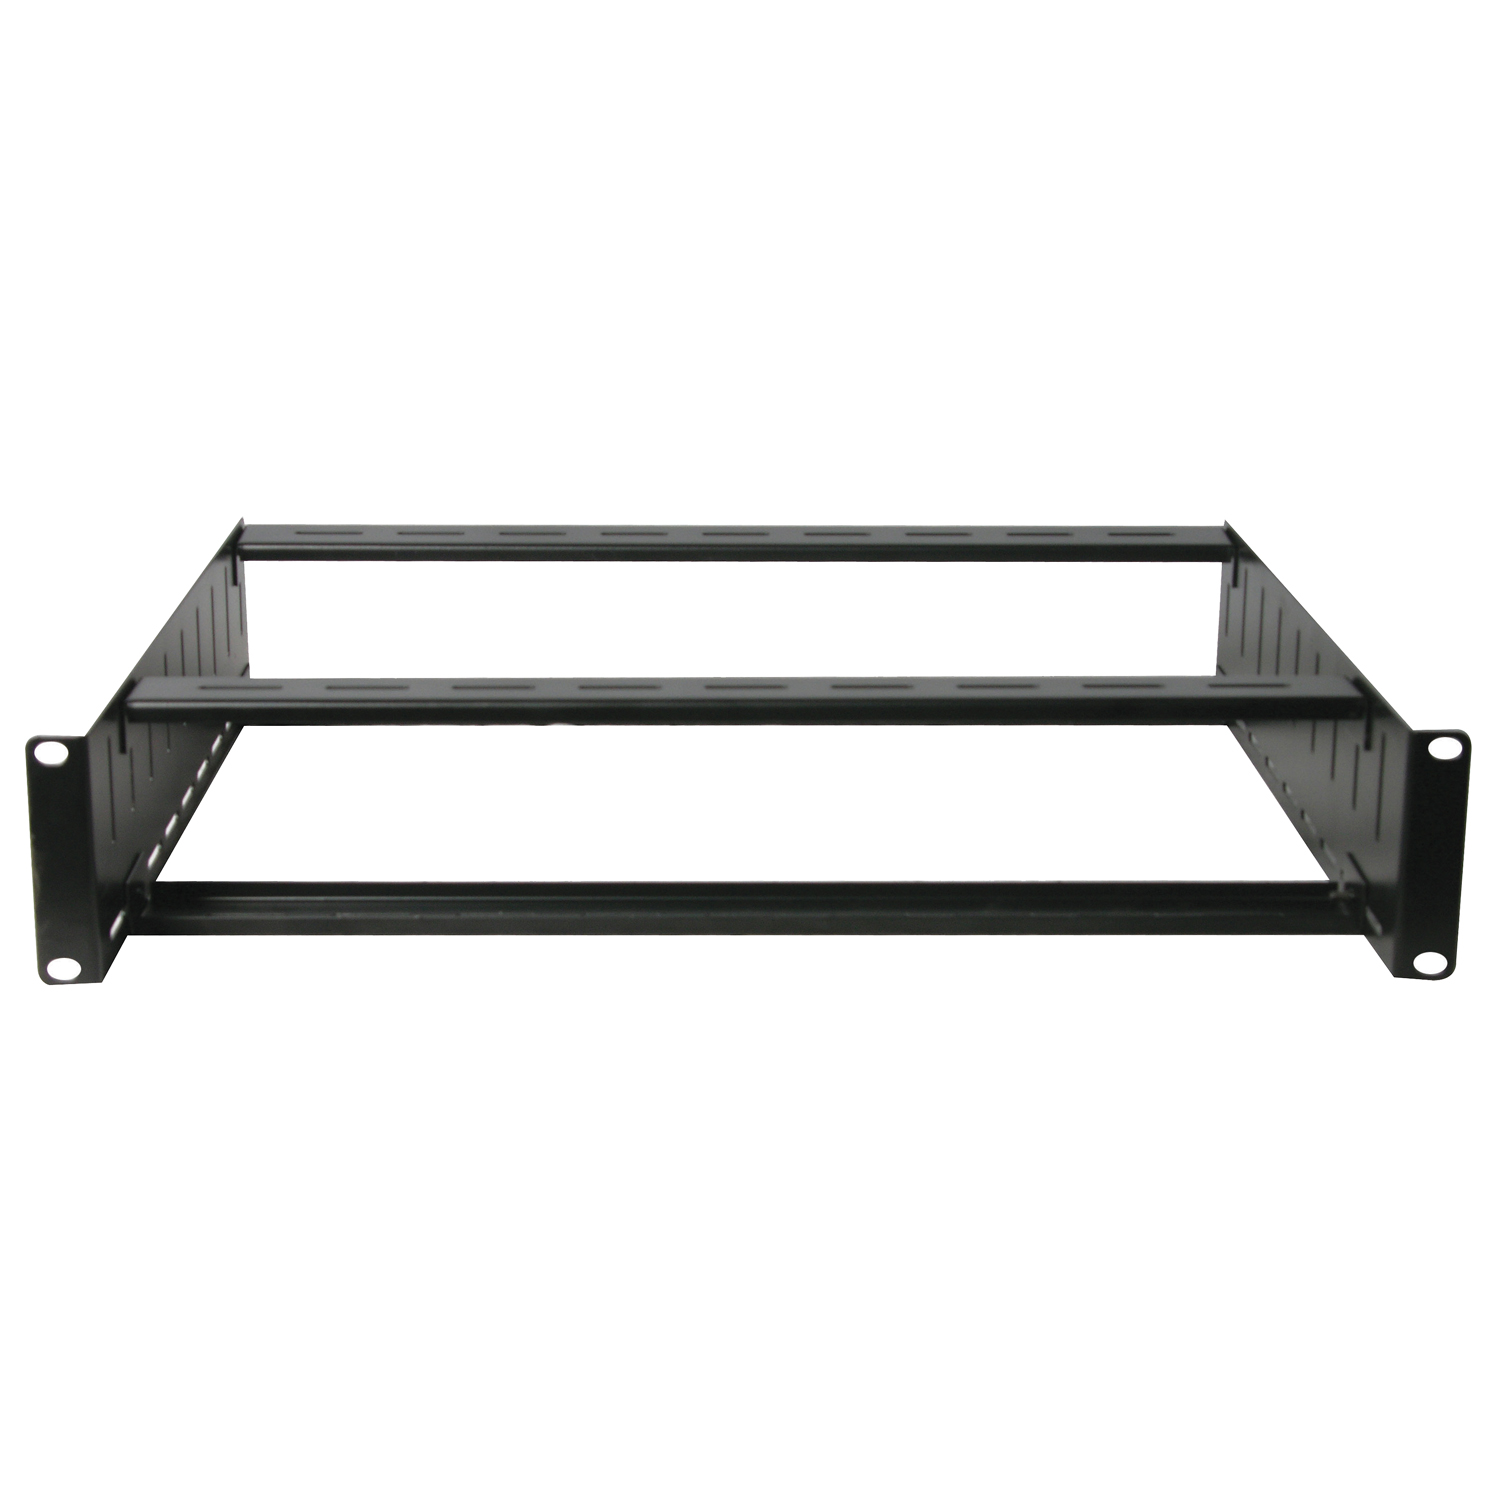 Clamping Shelf 2U